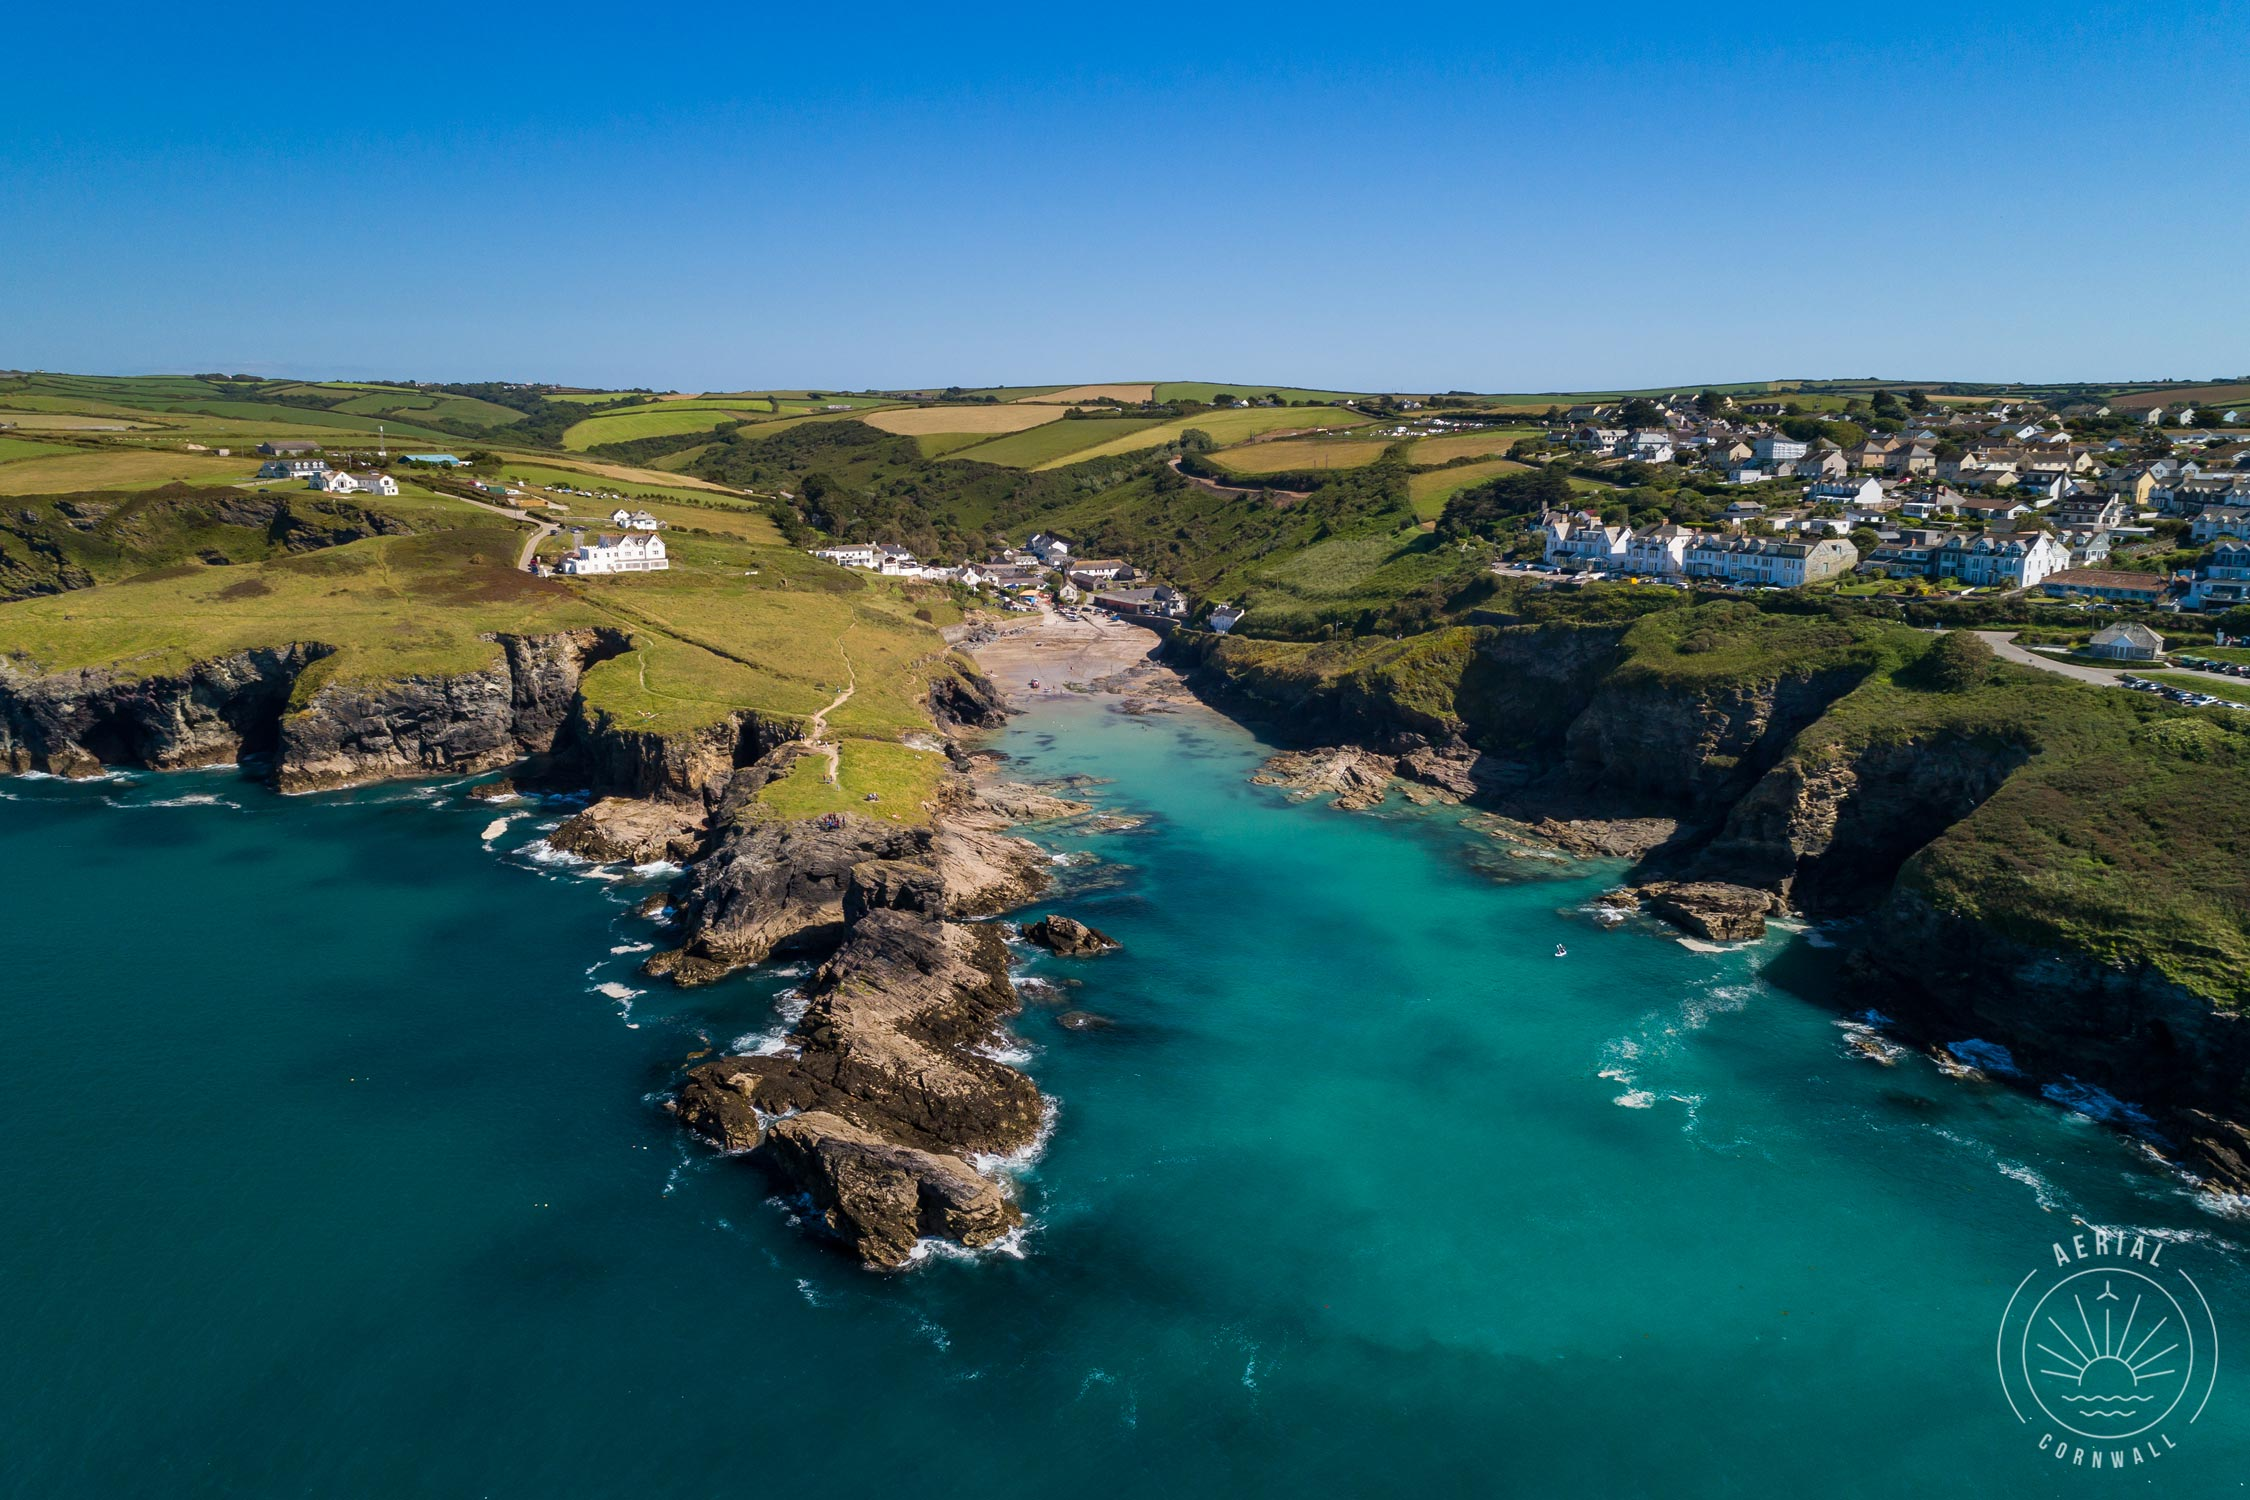 Location: Port Gaverne